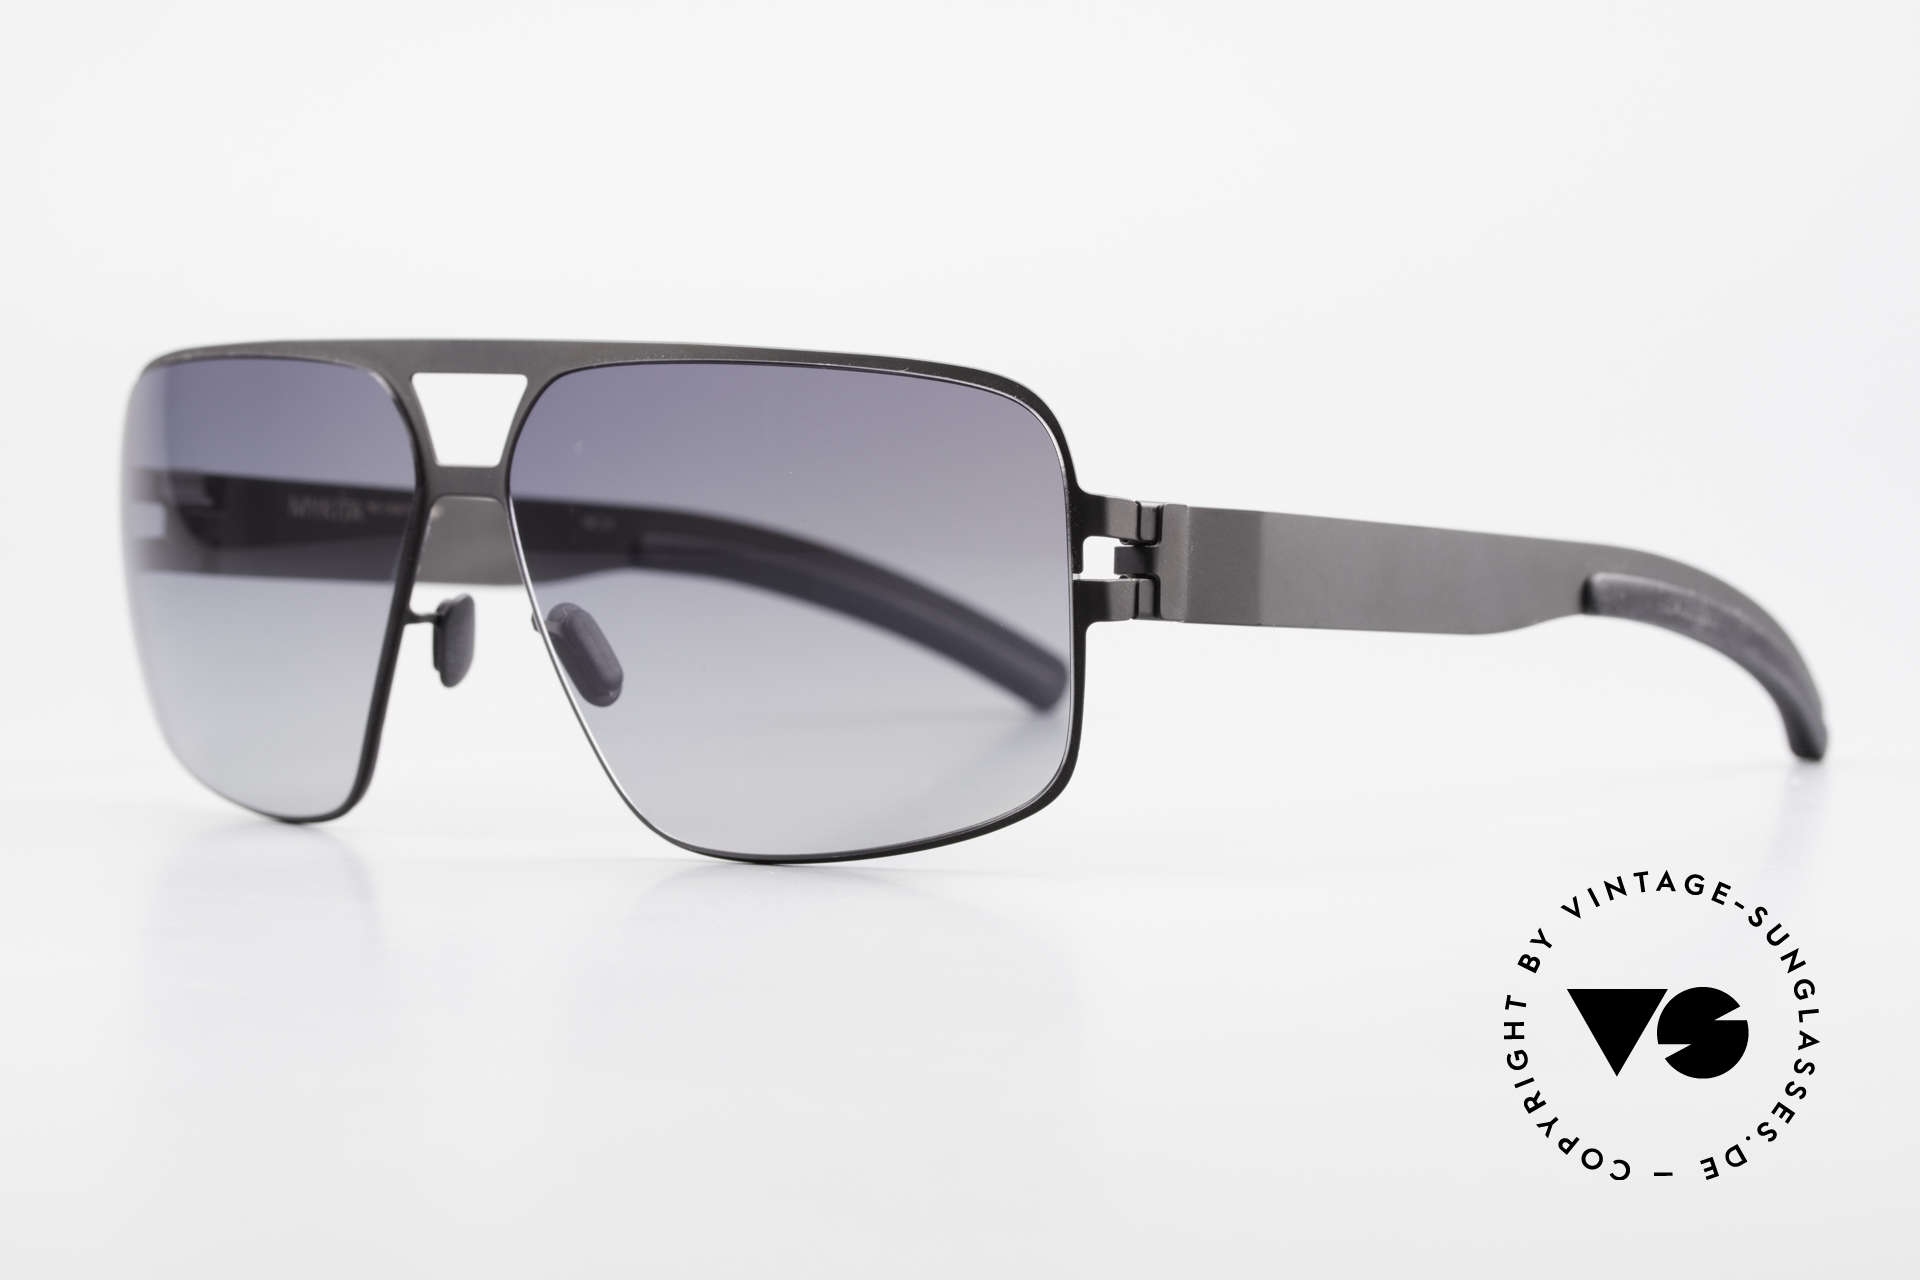 Mykita Tyrone Mykita Vintage Frame From 2011, Mod. No.1 Sun Tyrone Black, black-gradient, size 60/12, Made for Men